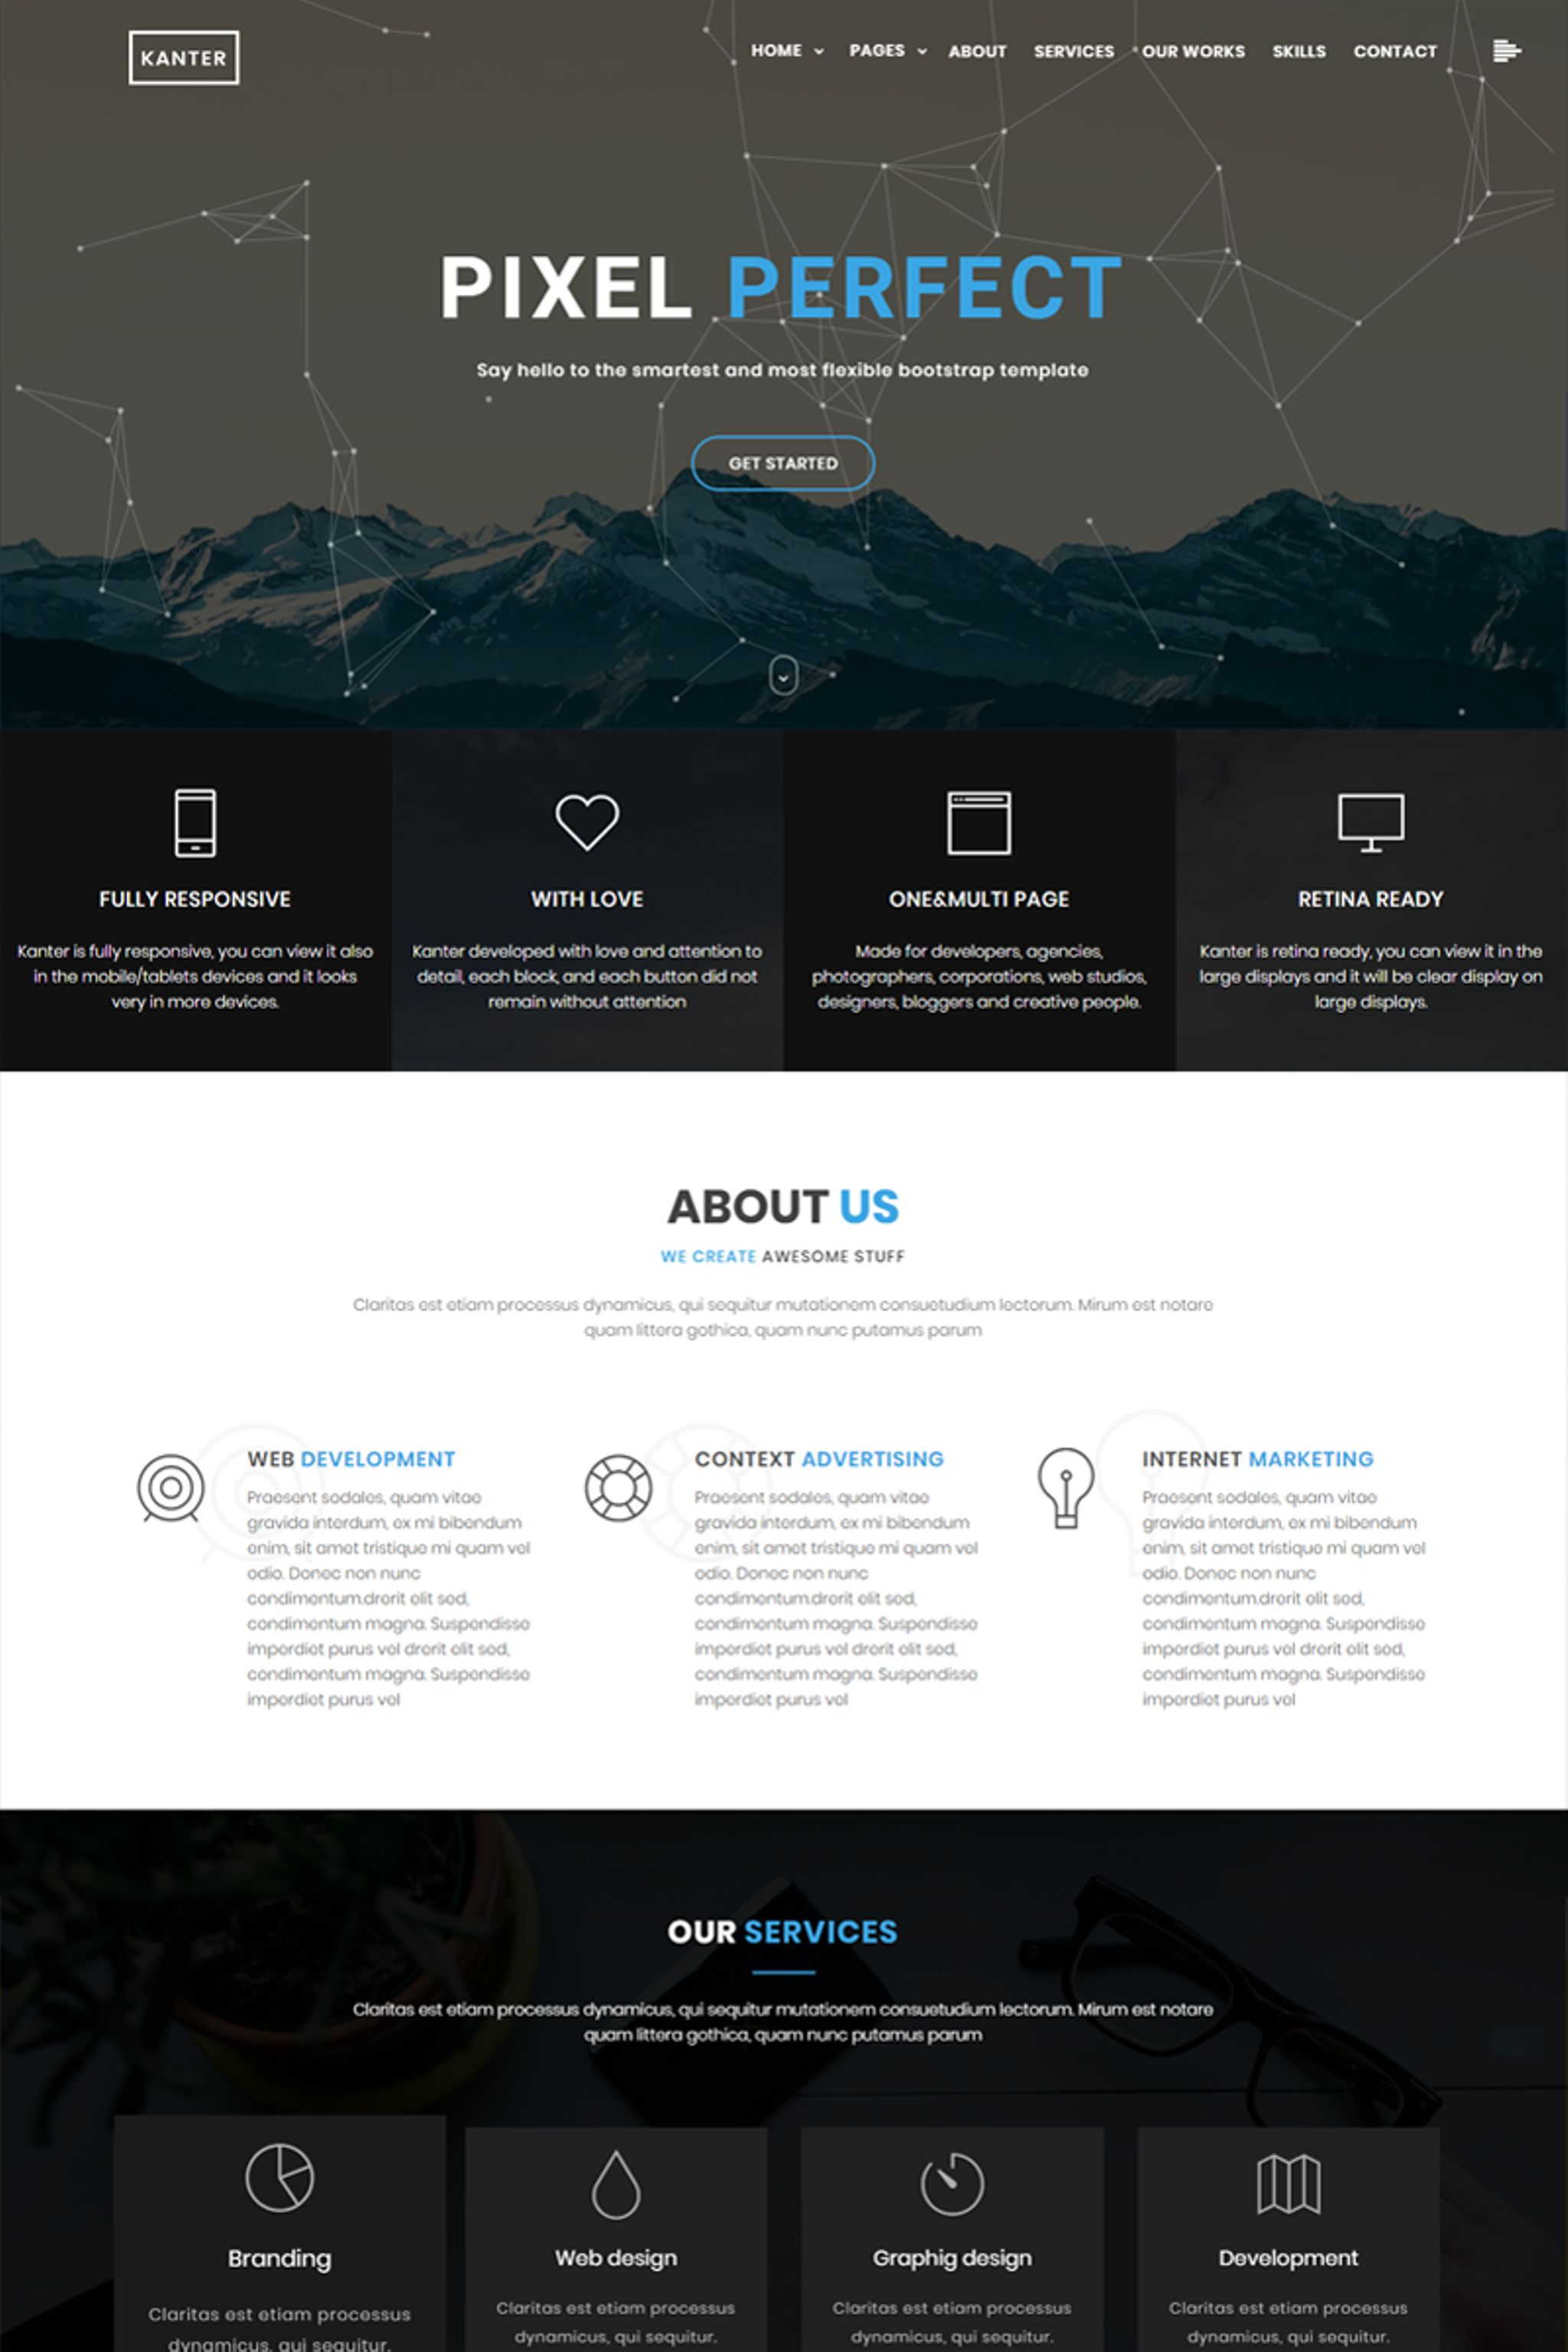 Kanter - Creative Responsive Minimalistic HTML Website Template - screenshot